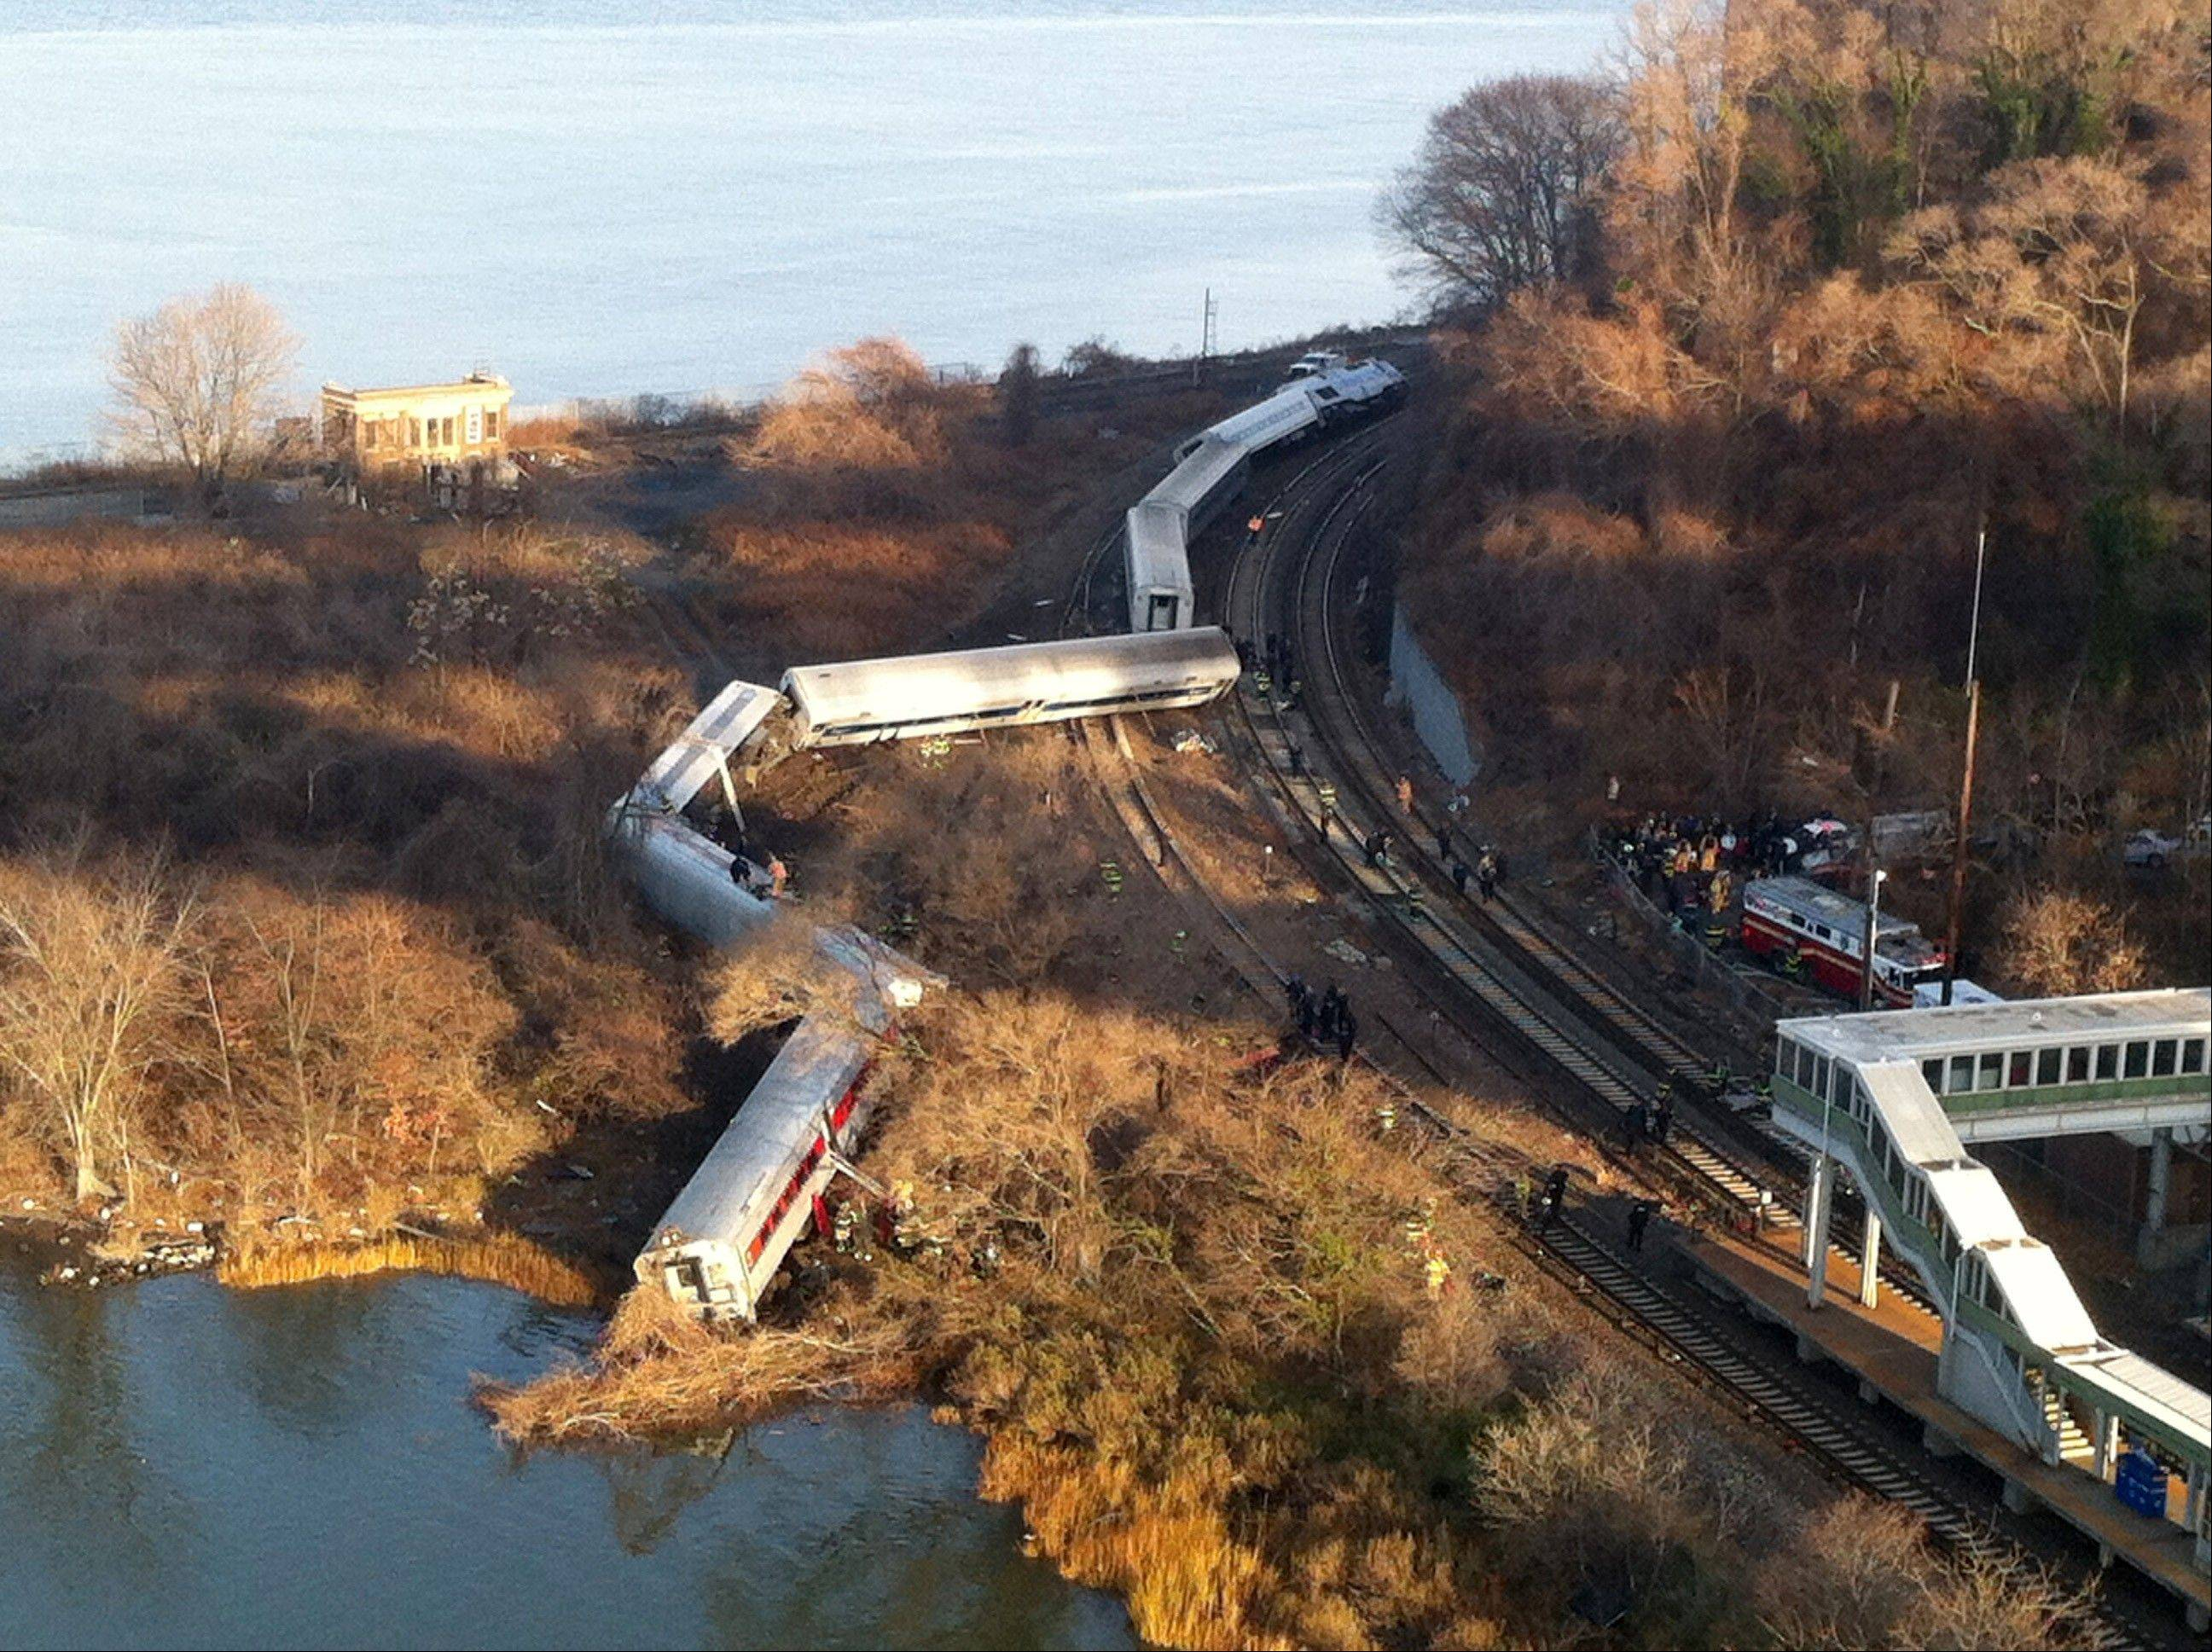 Cars from a Metro-North passenger train are scattered after the train derailed in the Bronx neighborhood of New York in this photo from Dec. 1. Although the train had an automatic breaking system that might have prevented the crash, at the time it wasn�t set up to enforce speed limits on the curve where the wreck happened.